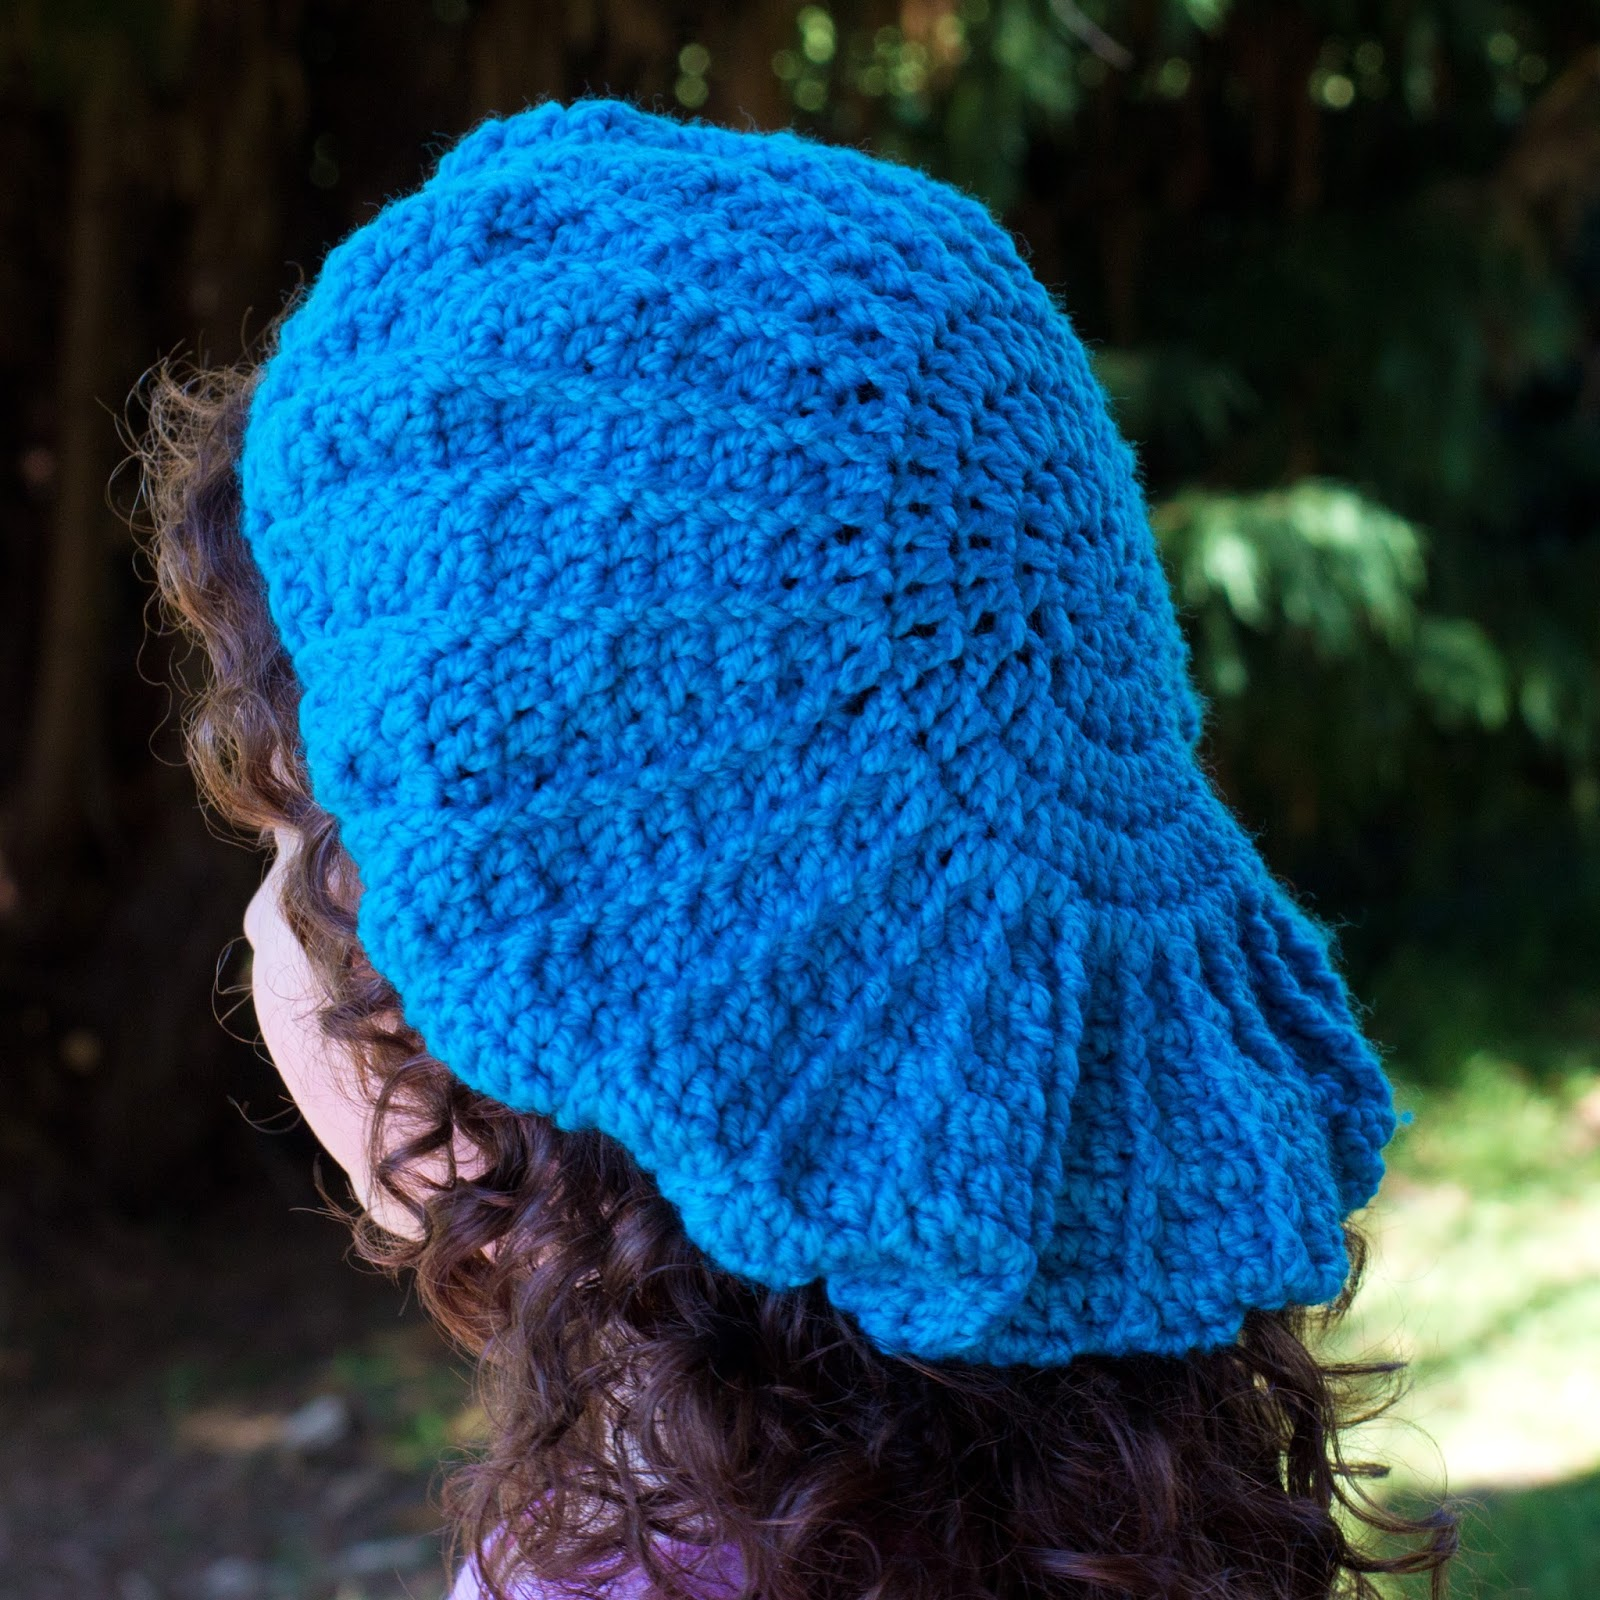 Free Crochet Patterns Novelty Hats : Hopeful Honey Craft, Crochet, Create: 10 Free Unique Hat ...